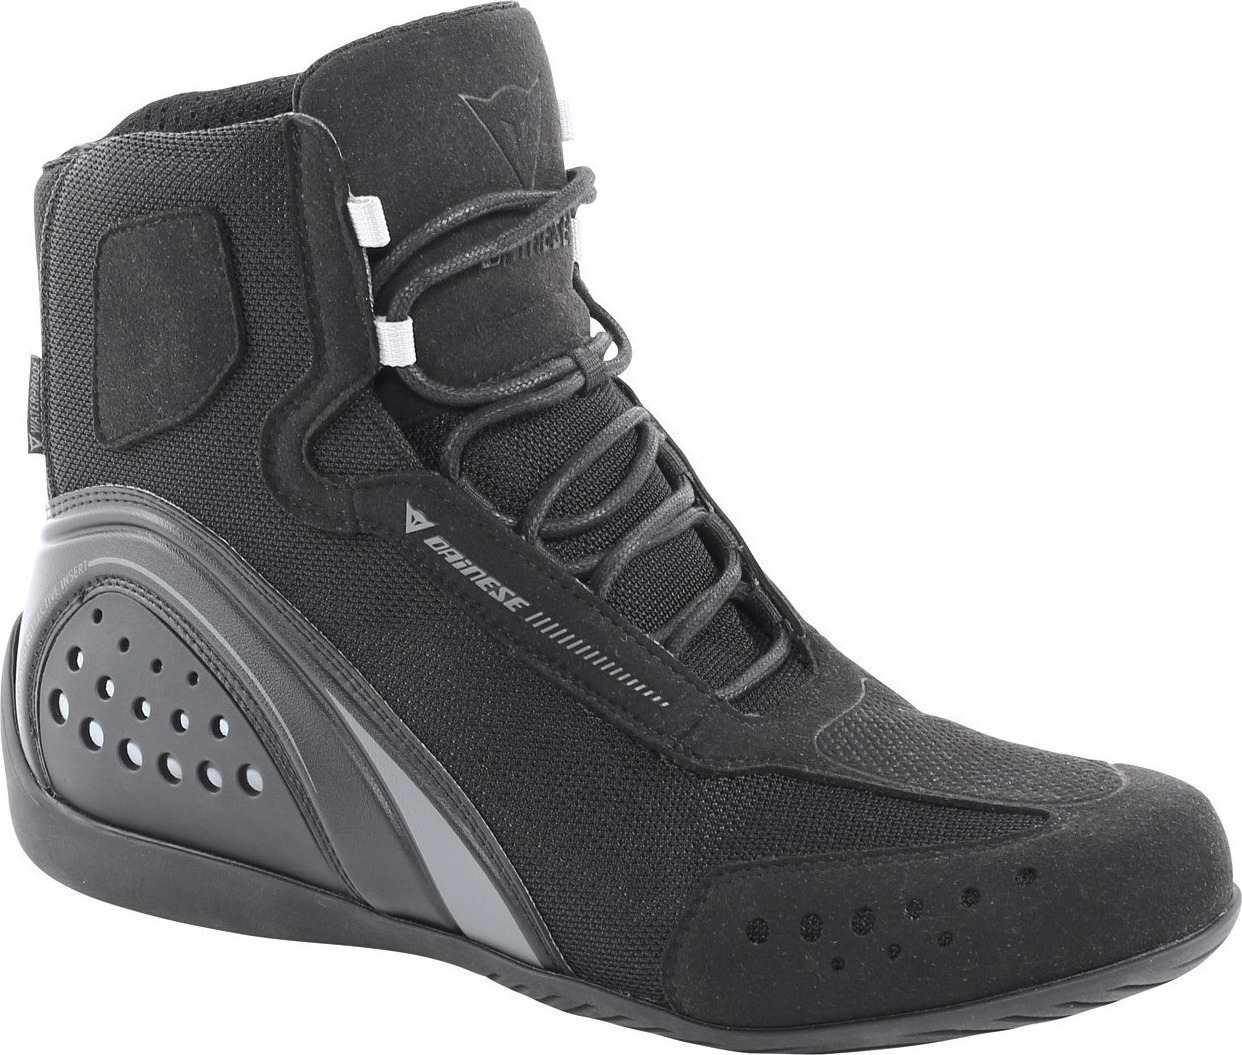 10d478fddb9 Προσθήκη στα αγαπημένα menu Dainese Motorshoe D-WP Black/Anthracite